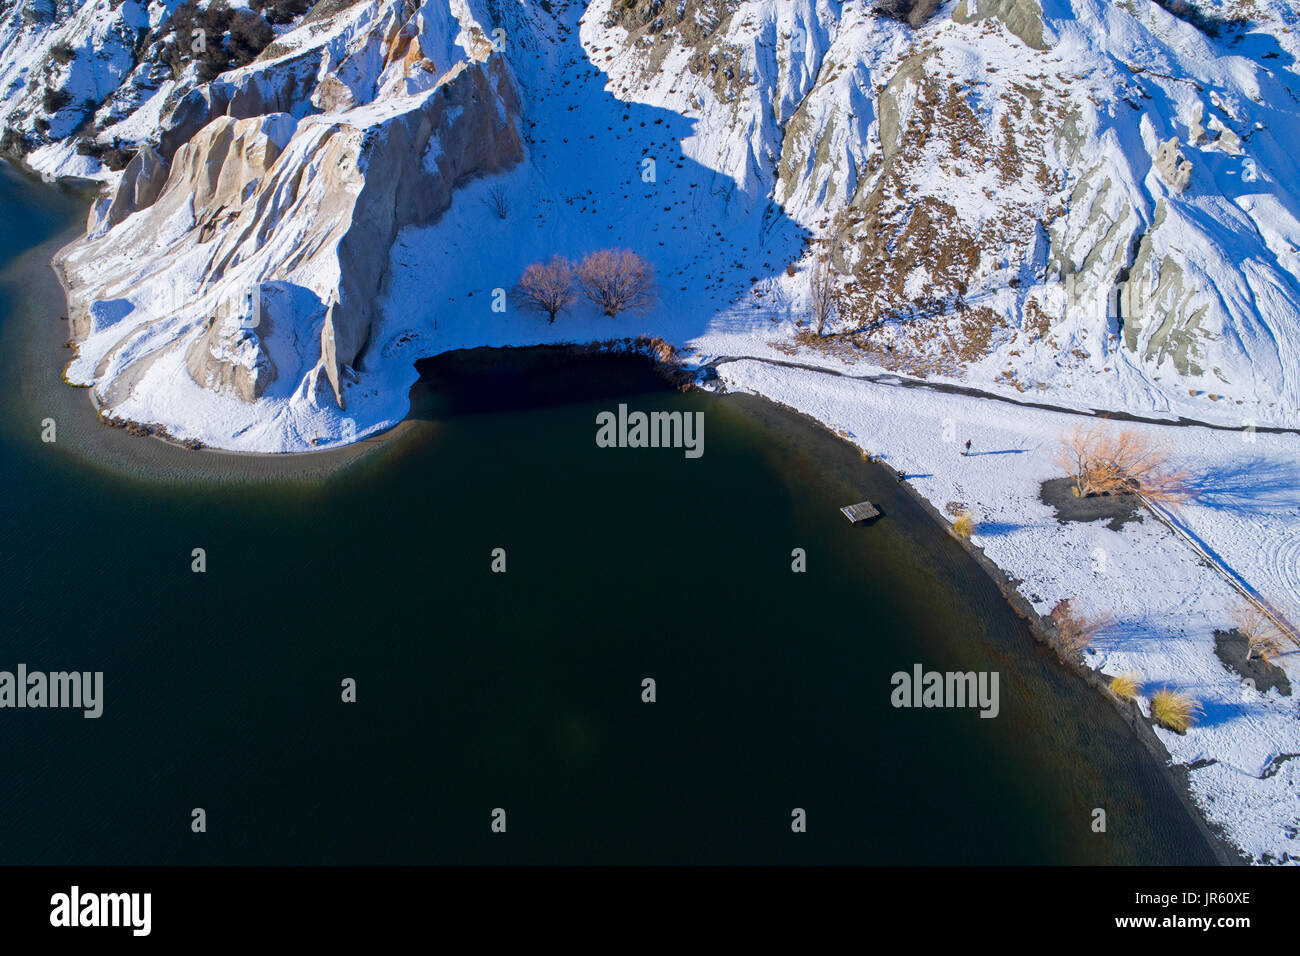 Blue Lake, St Bathans, Maniototo, Central Otago, South Island, New Zealand - drone aerial - Stock Image